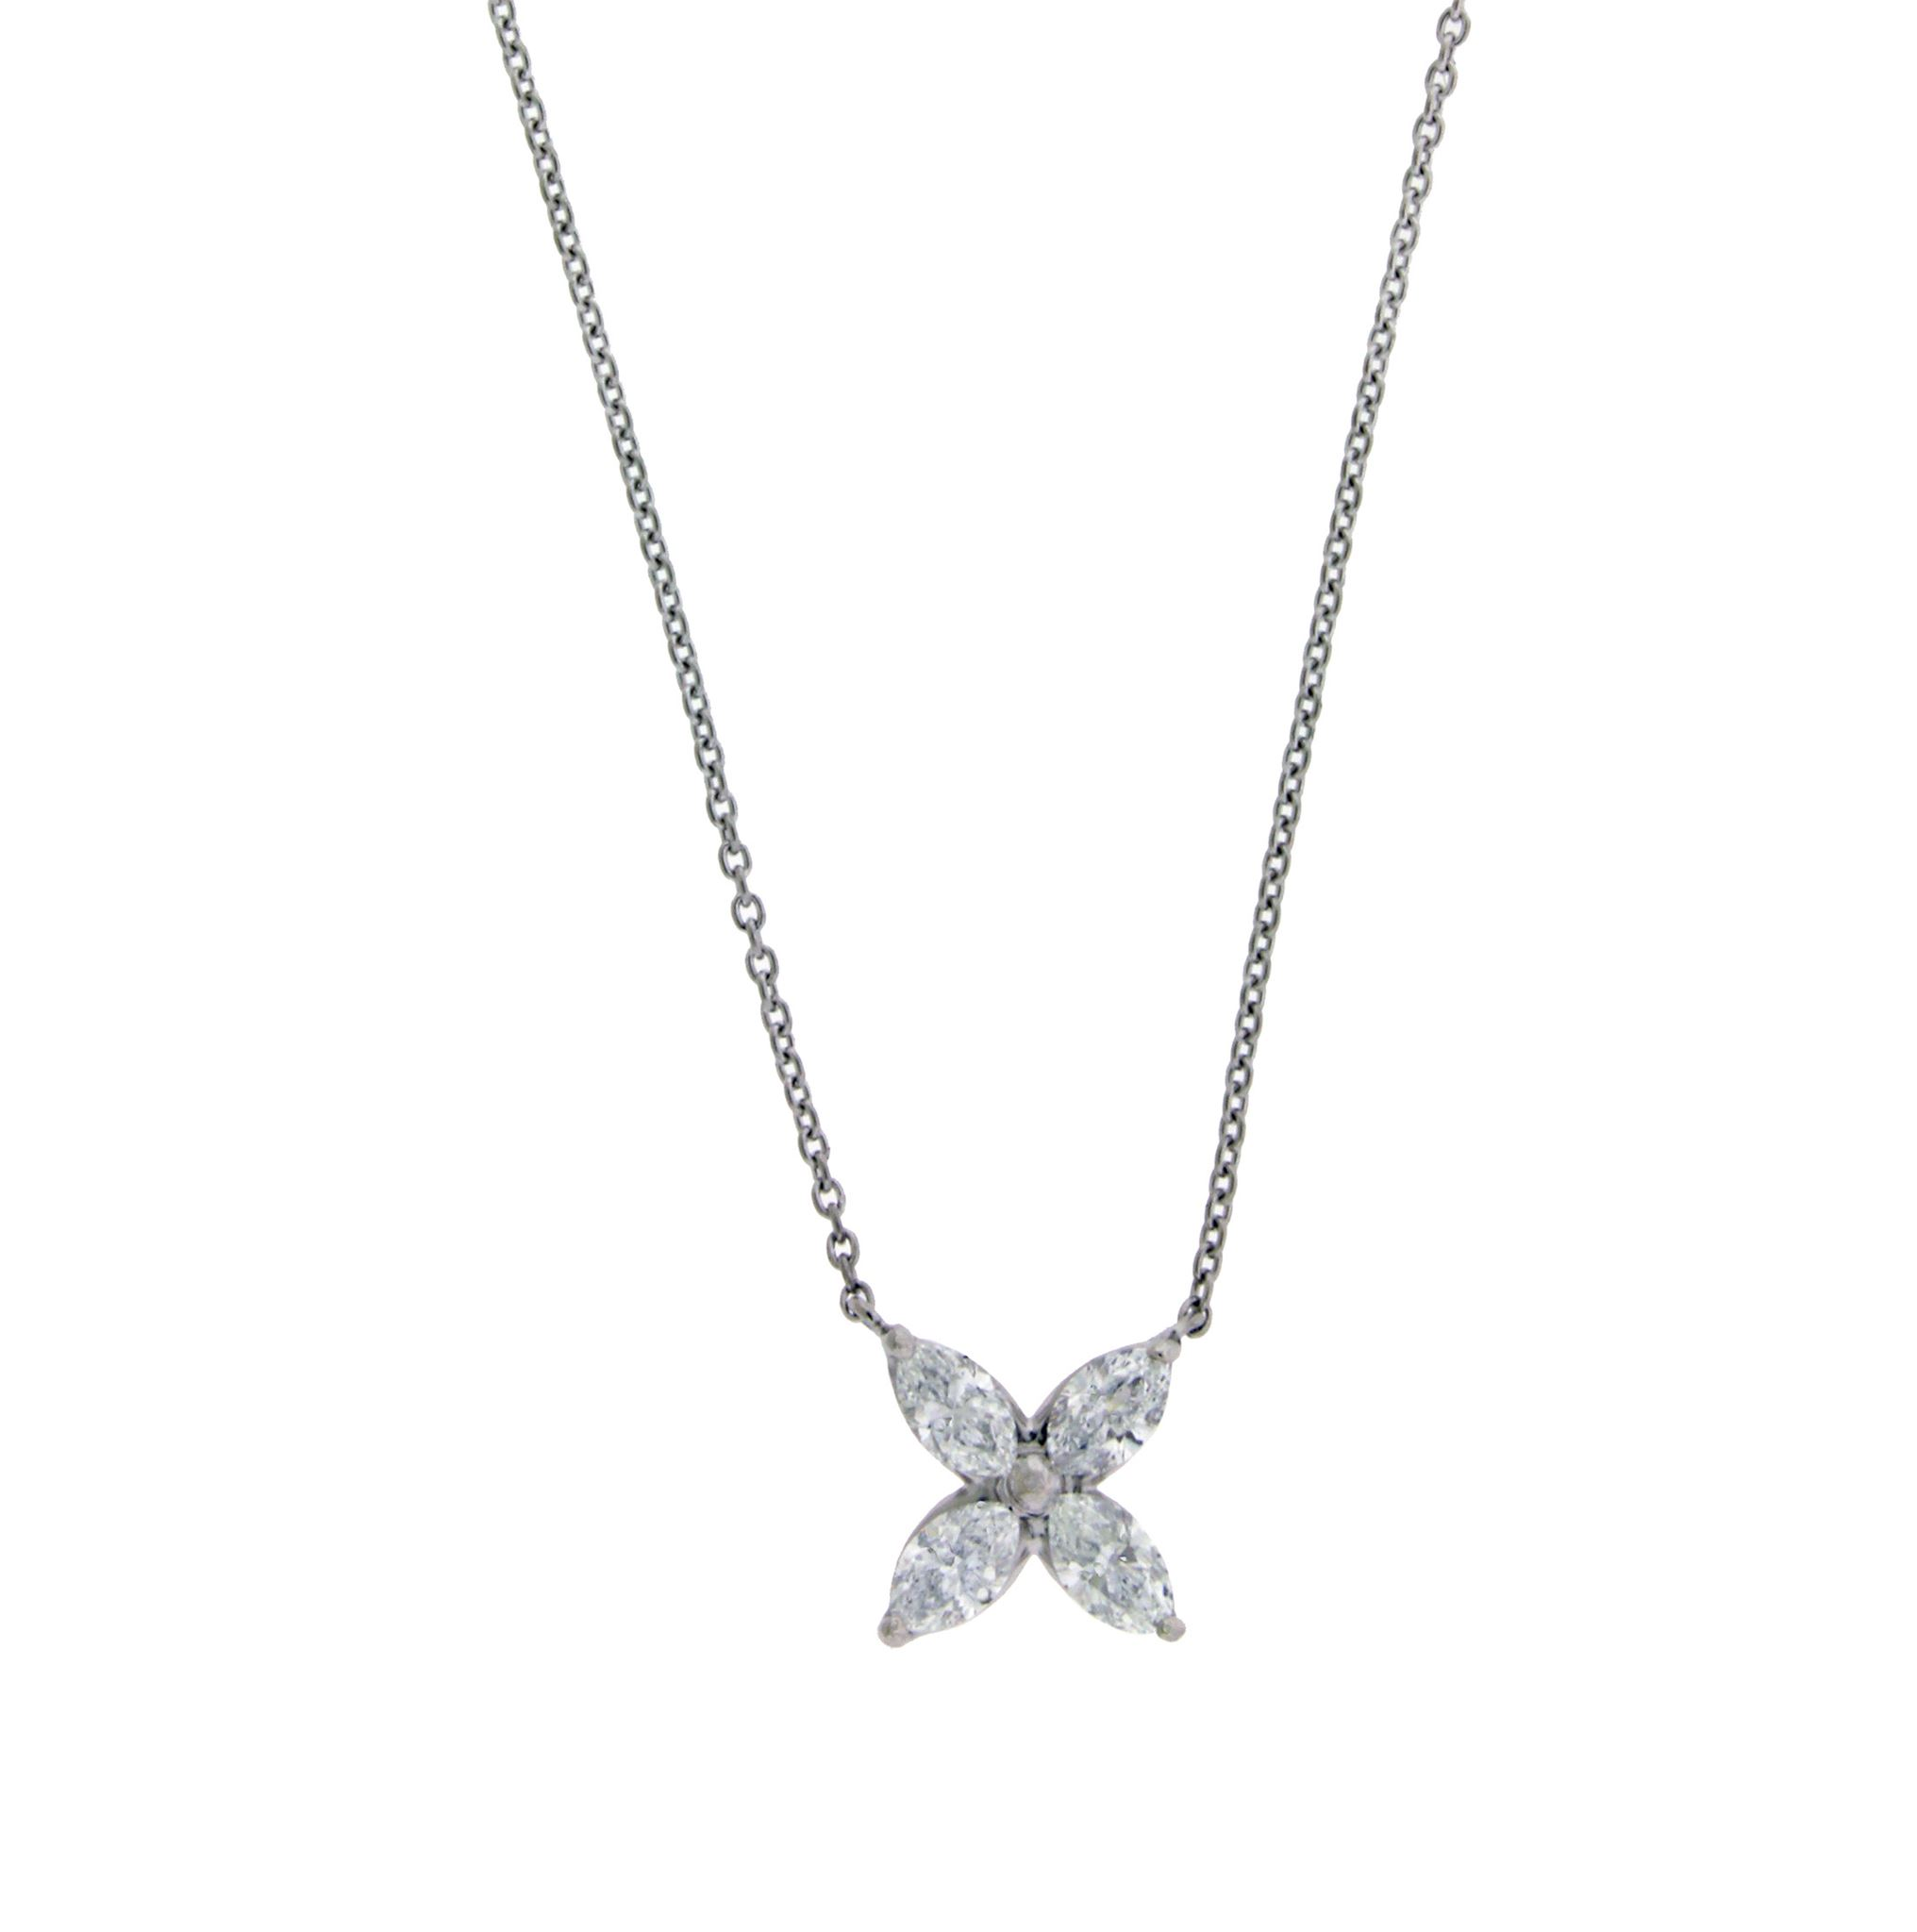 product jsp wid two w tw sharpen hei pendant t necklace silver sterling prd tone op heart diamond carat